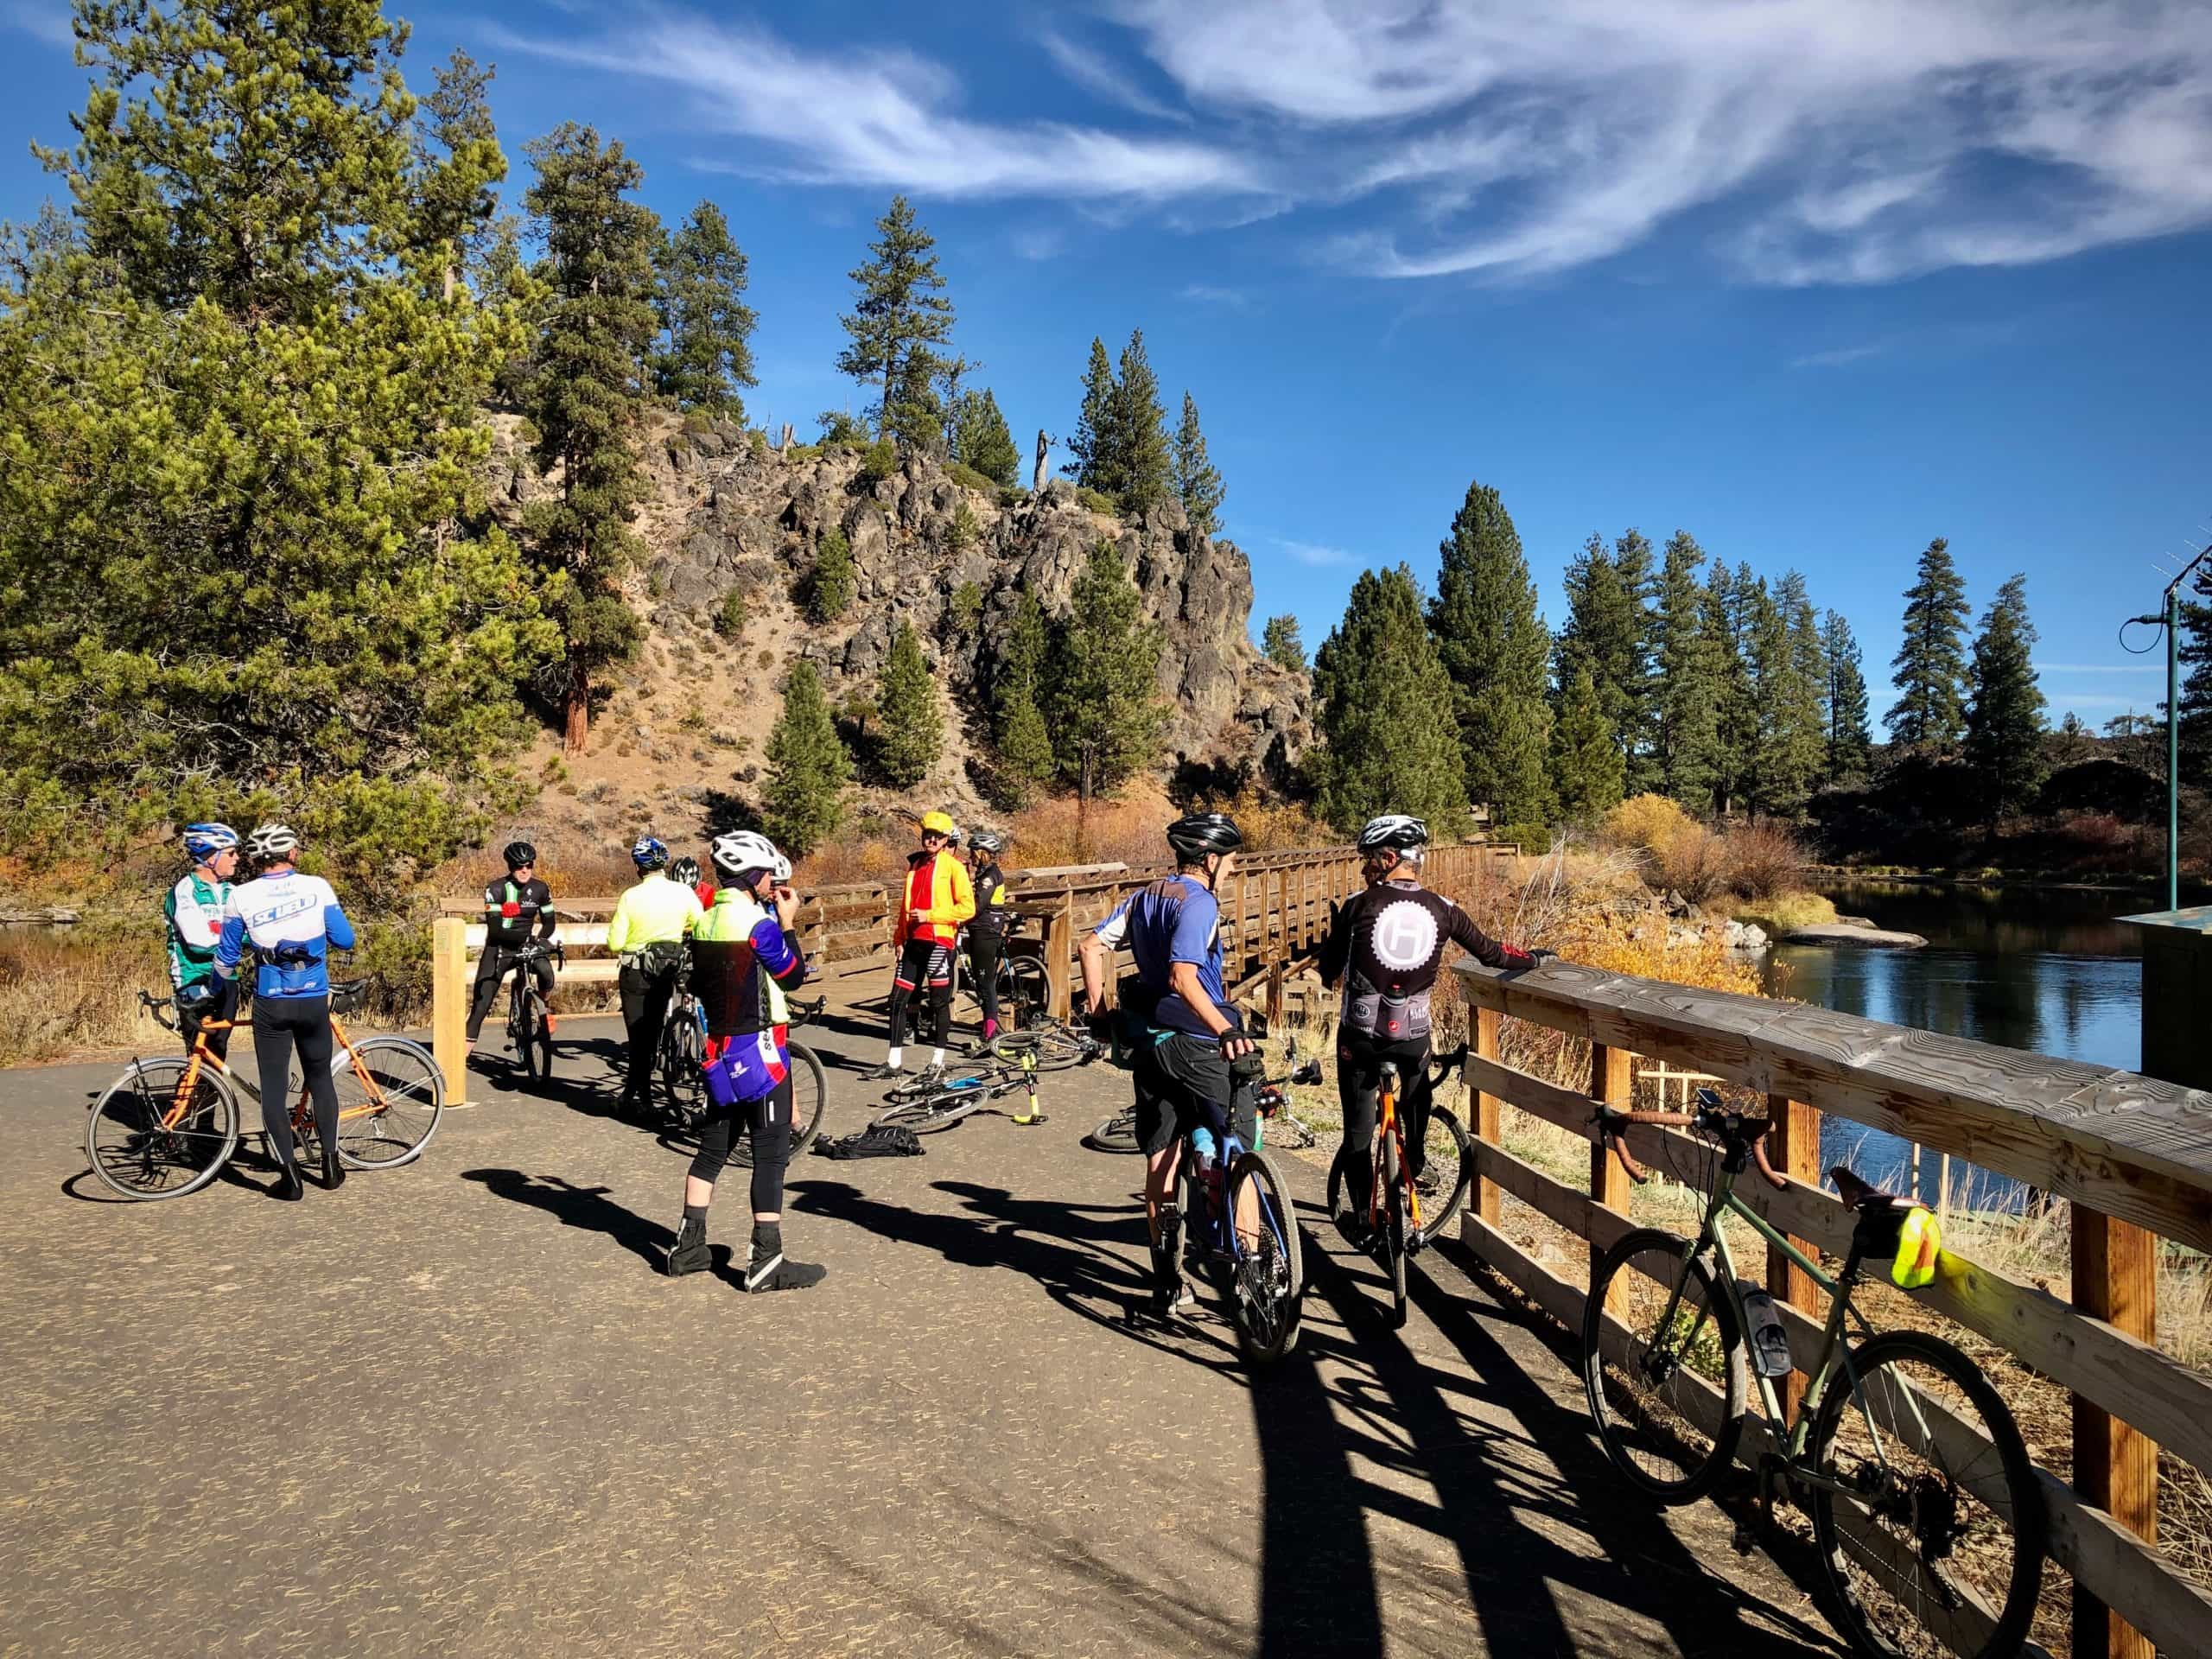 A group of gravel cyclists gathered on the wooden bridge at Benham Falls near Bend, Oregon.